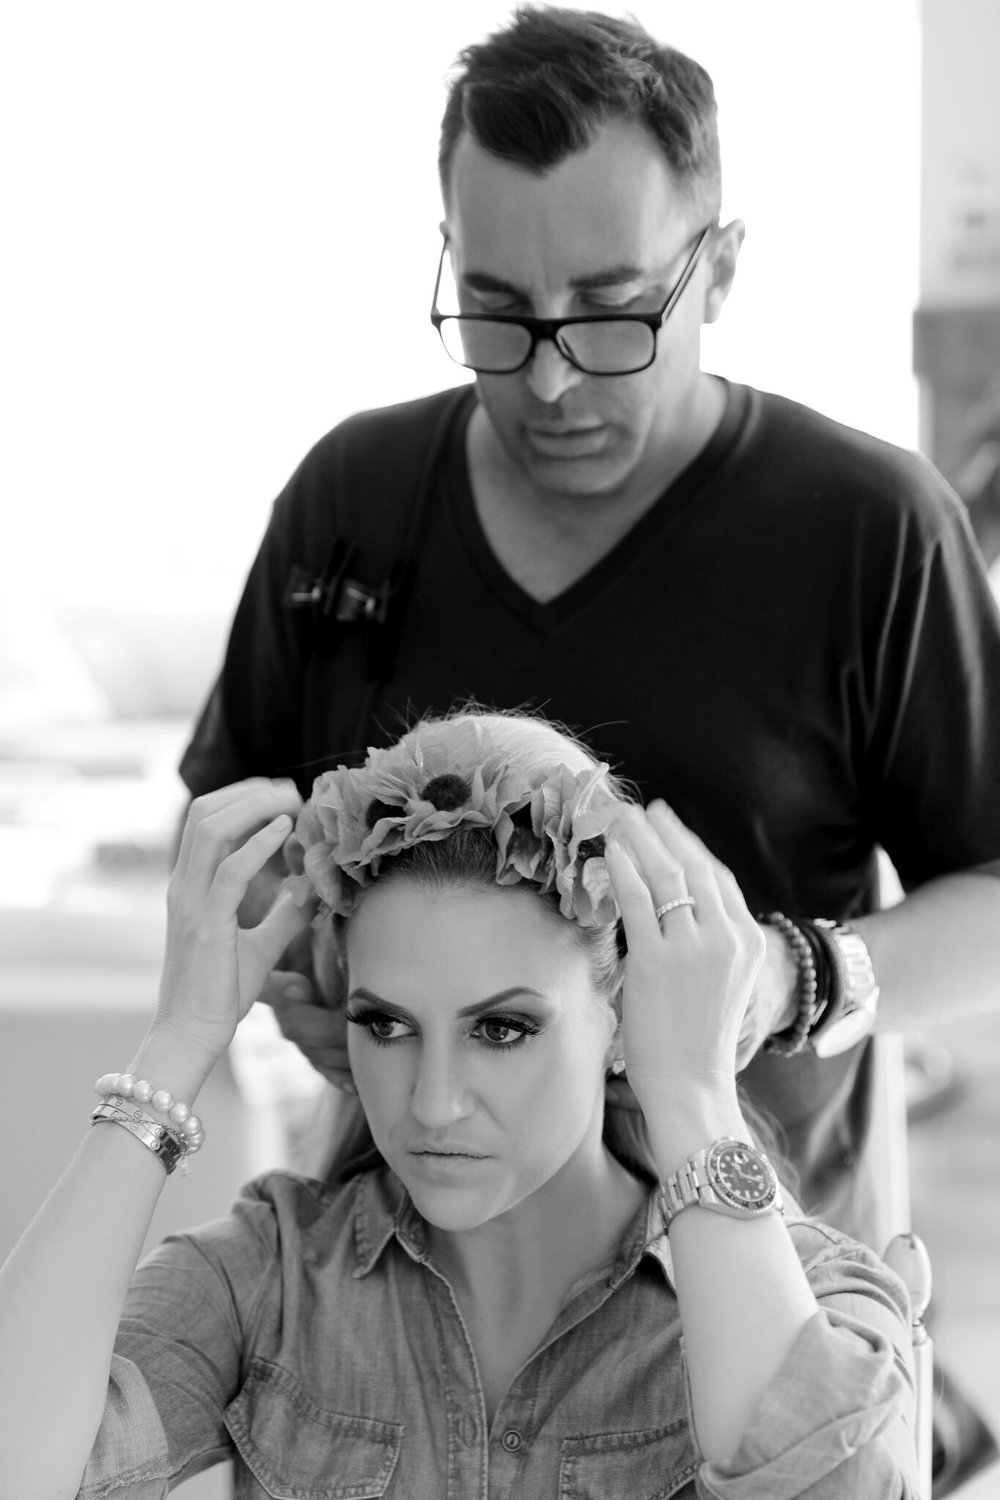 Behind the Scenes of Dolce and Gabbanna Carretto Siciliano Inspired Photoshoot - Hair by Joh Bailey Nora